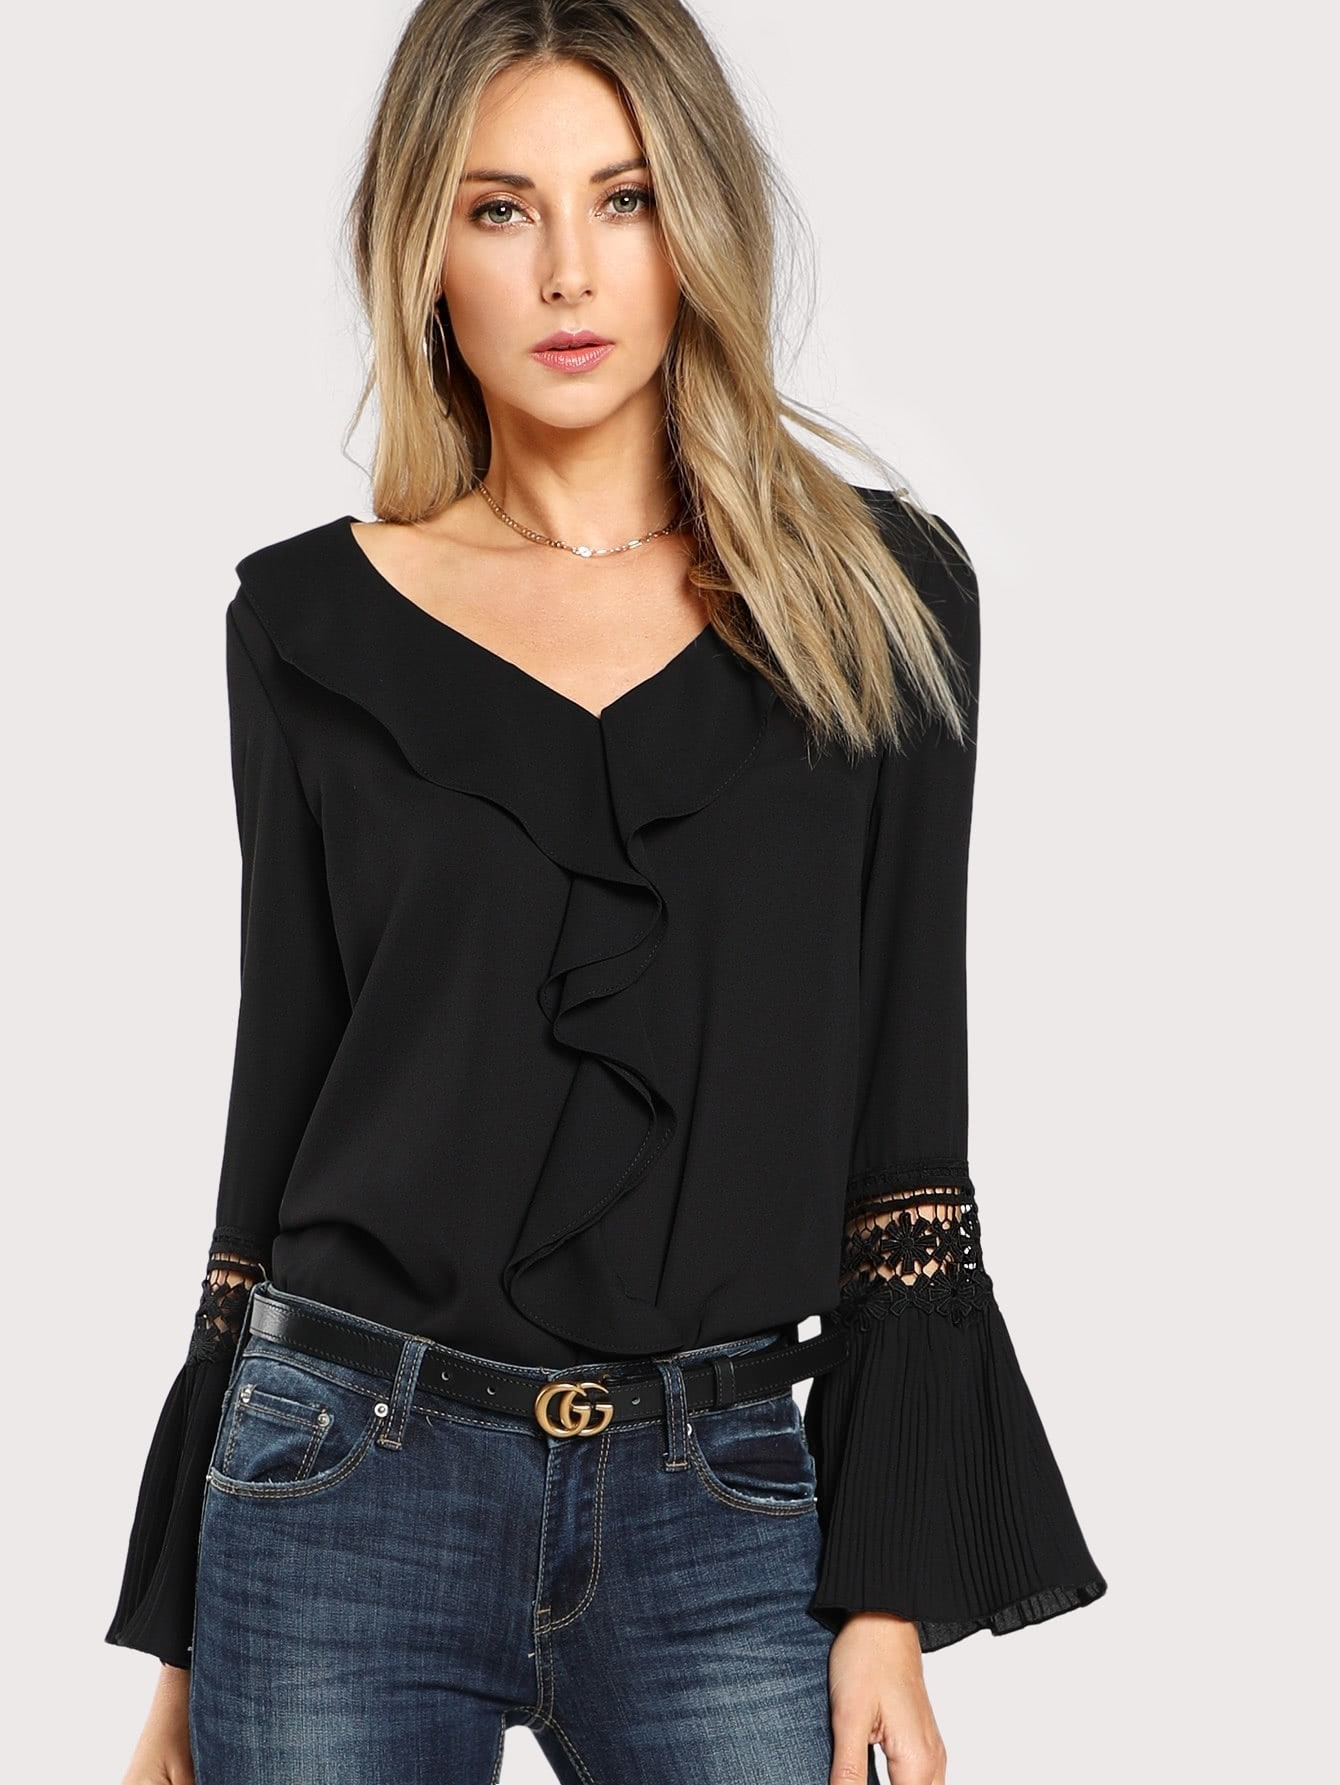 Ruffle Neck Lace Insert Pleated Cuff Top tiered pleated cuff solid top